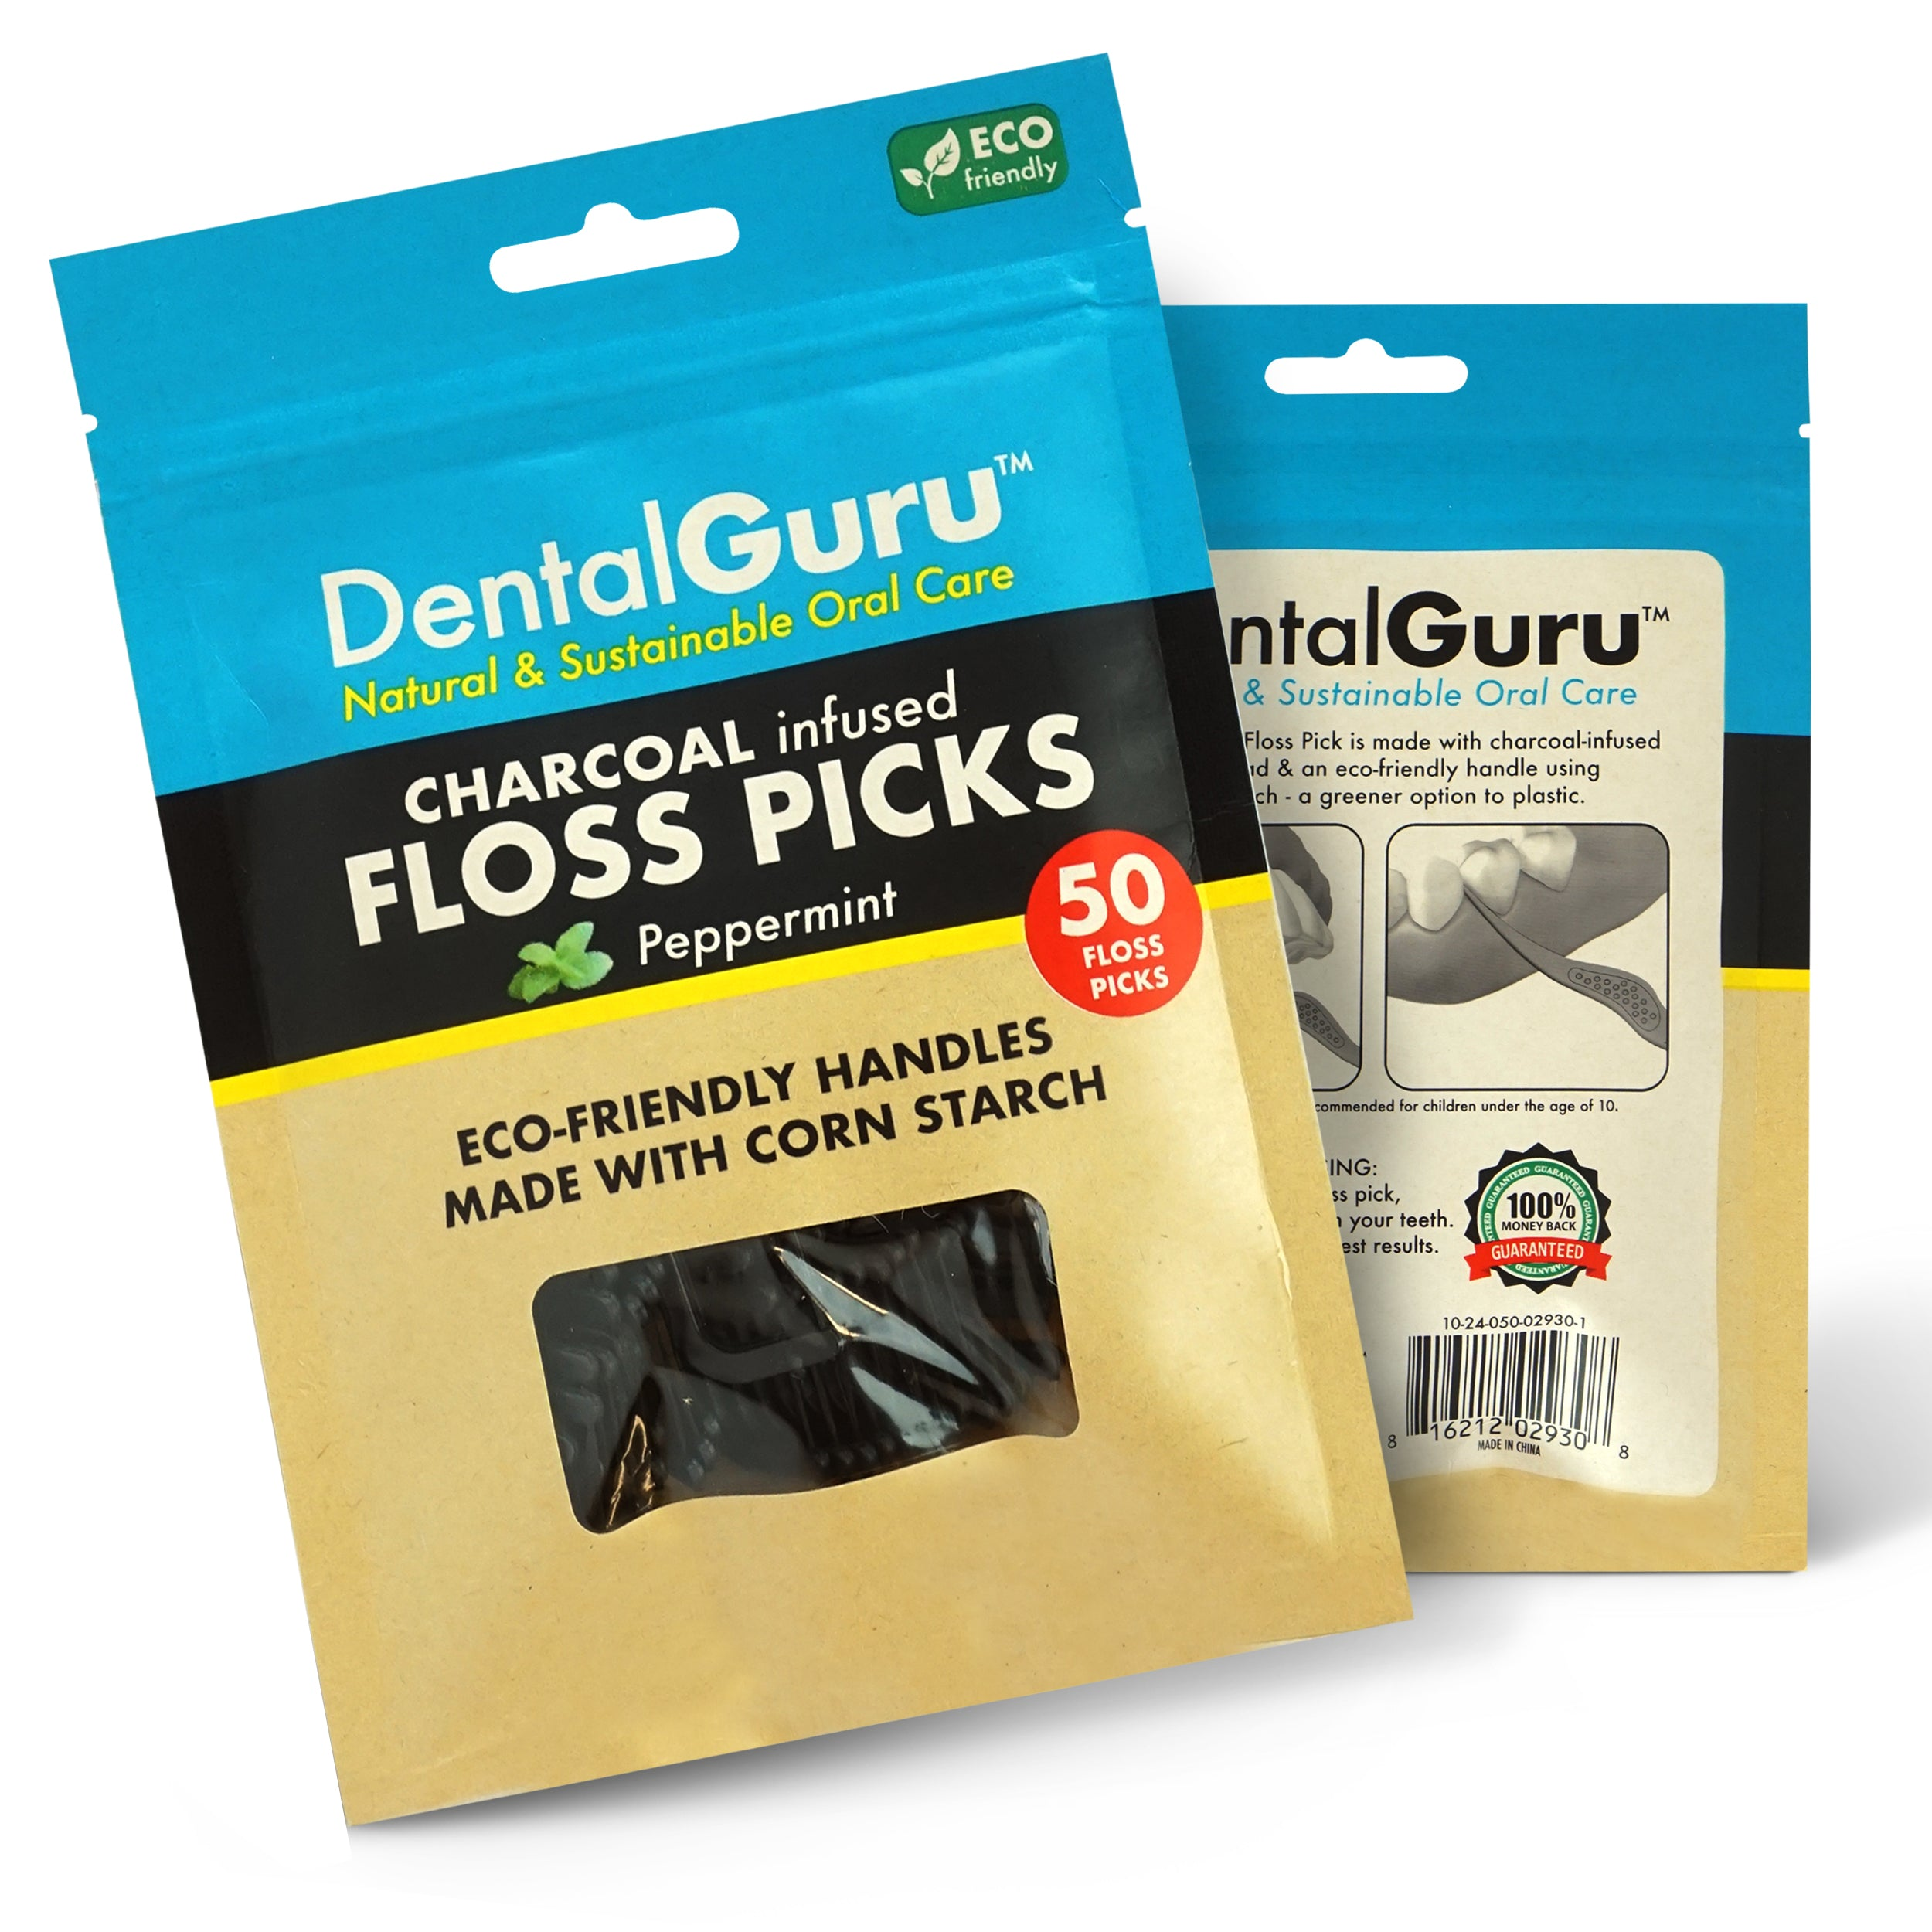 Charcoal Floss Picks (pack of 18)